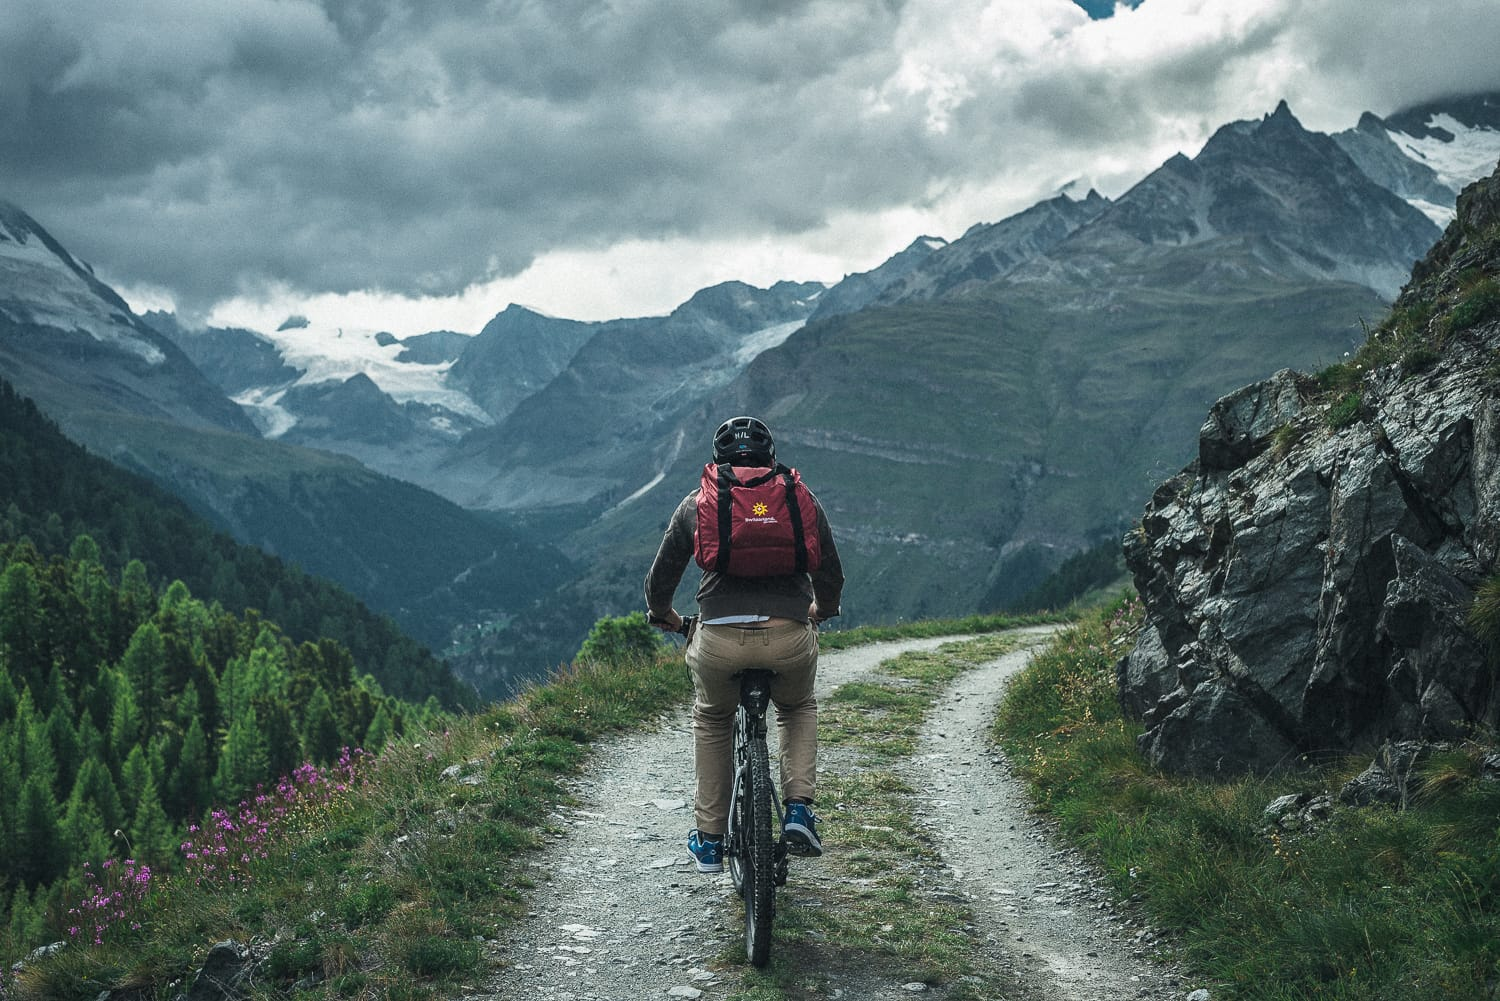 Switzerland pt. III – Mountain biking in the Swiss alps